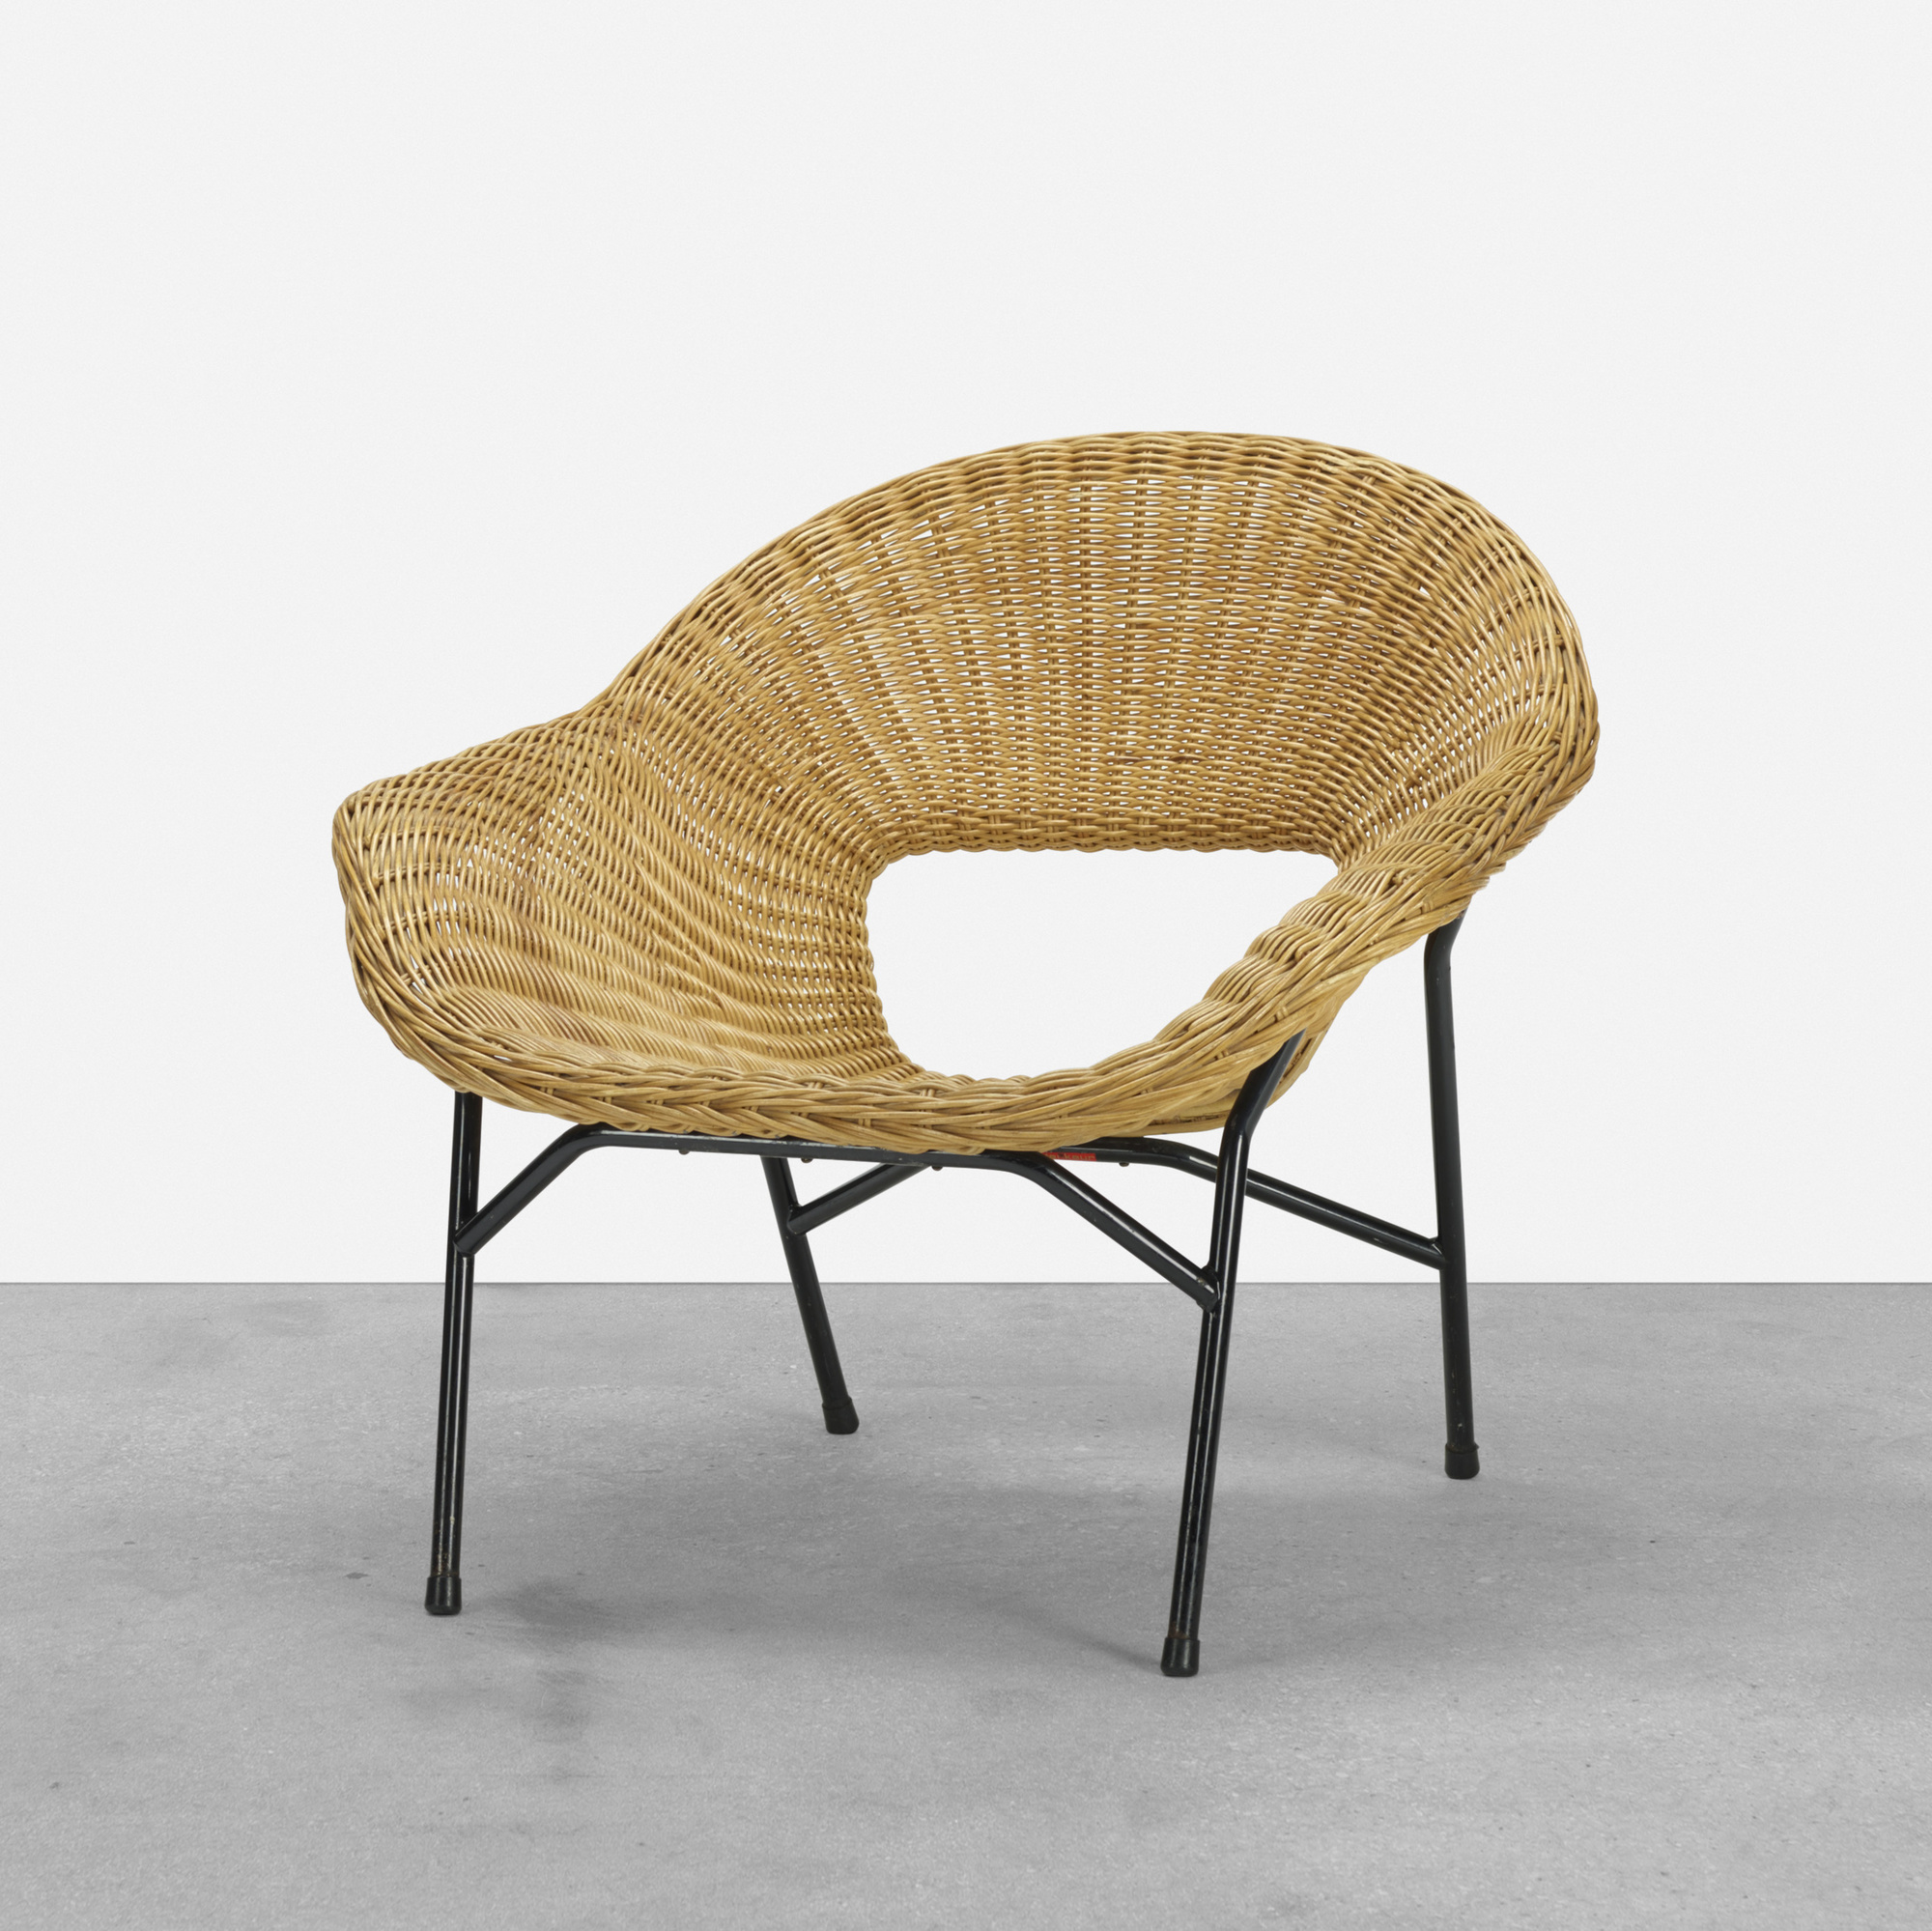 382: P.J Muntendam / lounge chair (1 of 5)